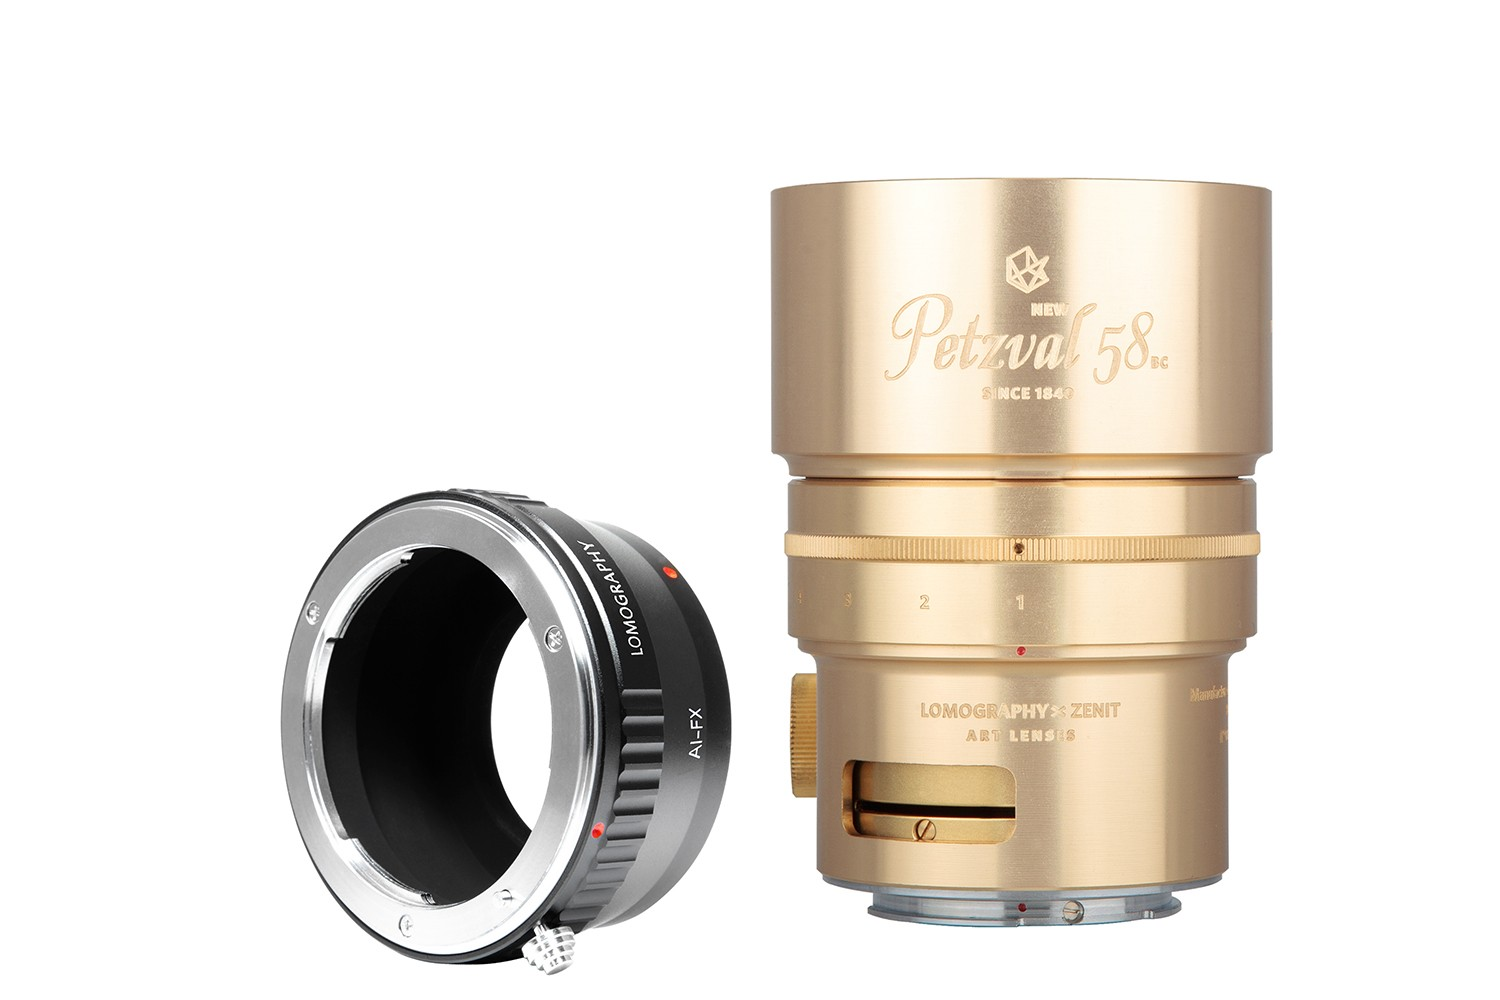 New Petzval 58 Bokeh Control Art Lens Brass - Nikon F Mount with Fujifilm X Adapter